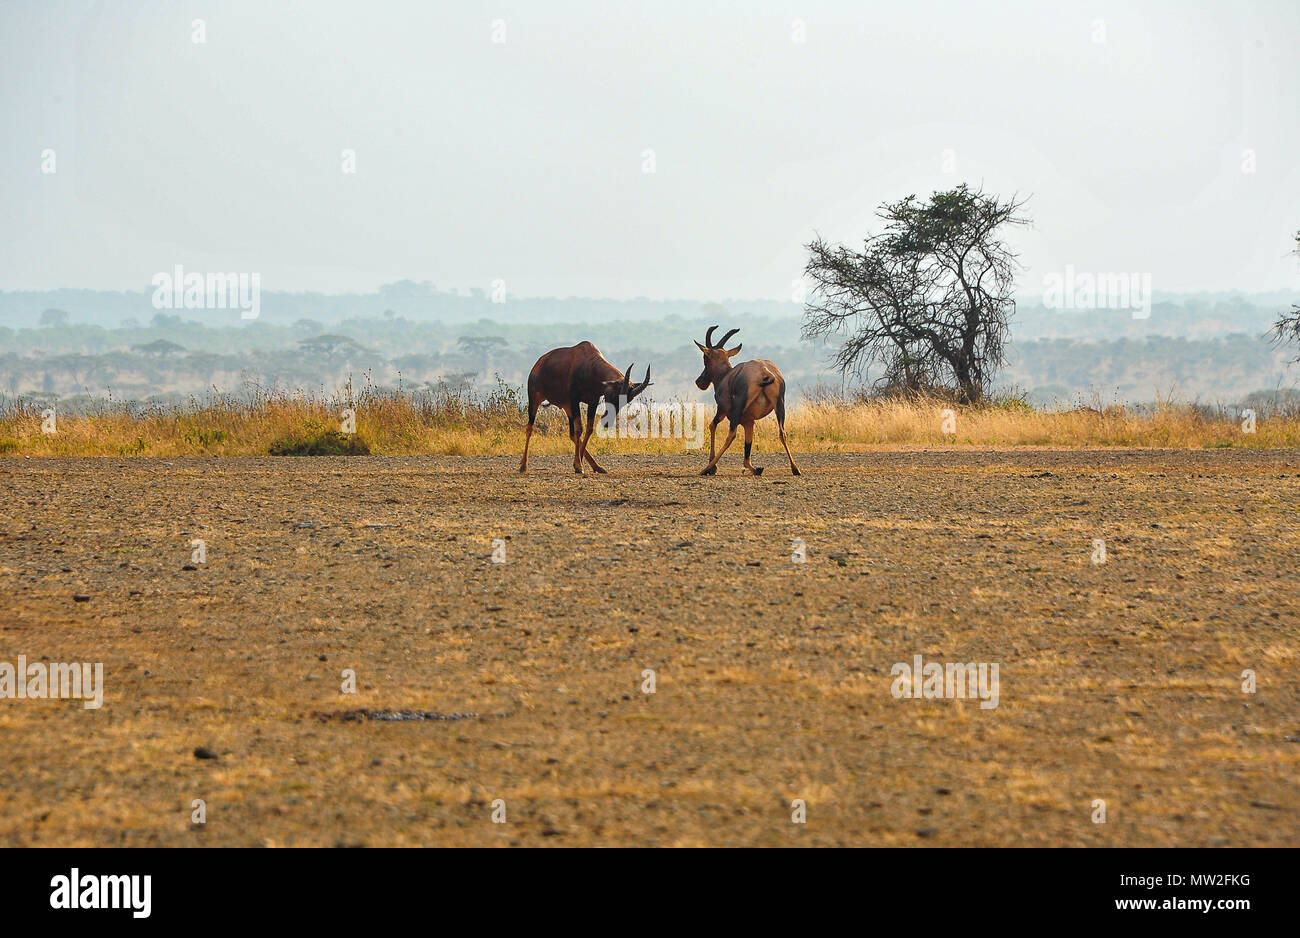 Topi Antelopes (Damaliscus lunatus jimela) fight for territory in an African landscape. Two young males lock horns on dry grassland - Stock Image